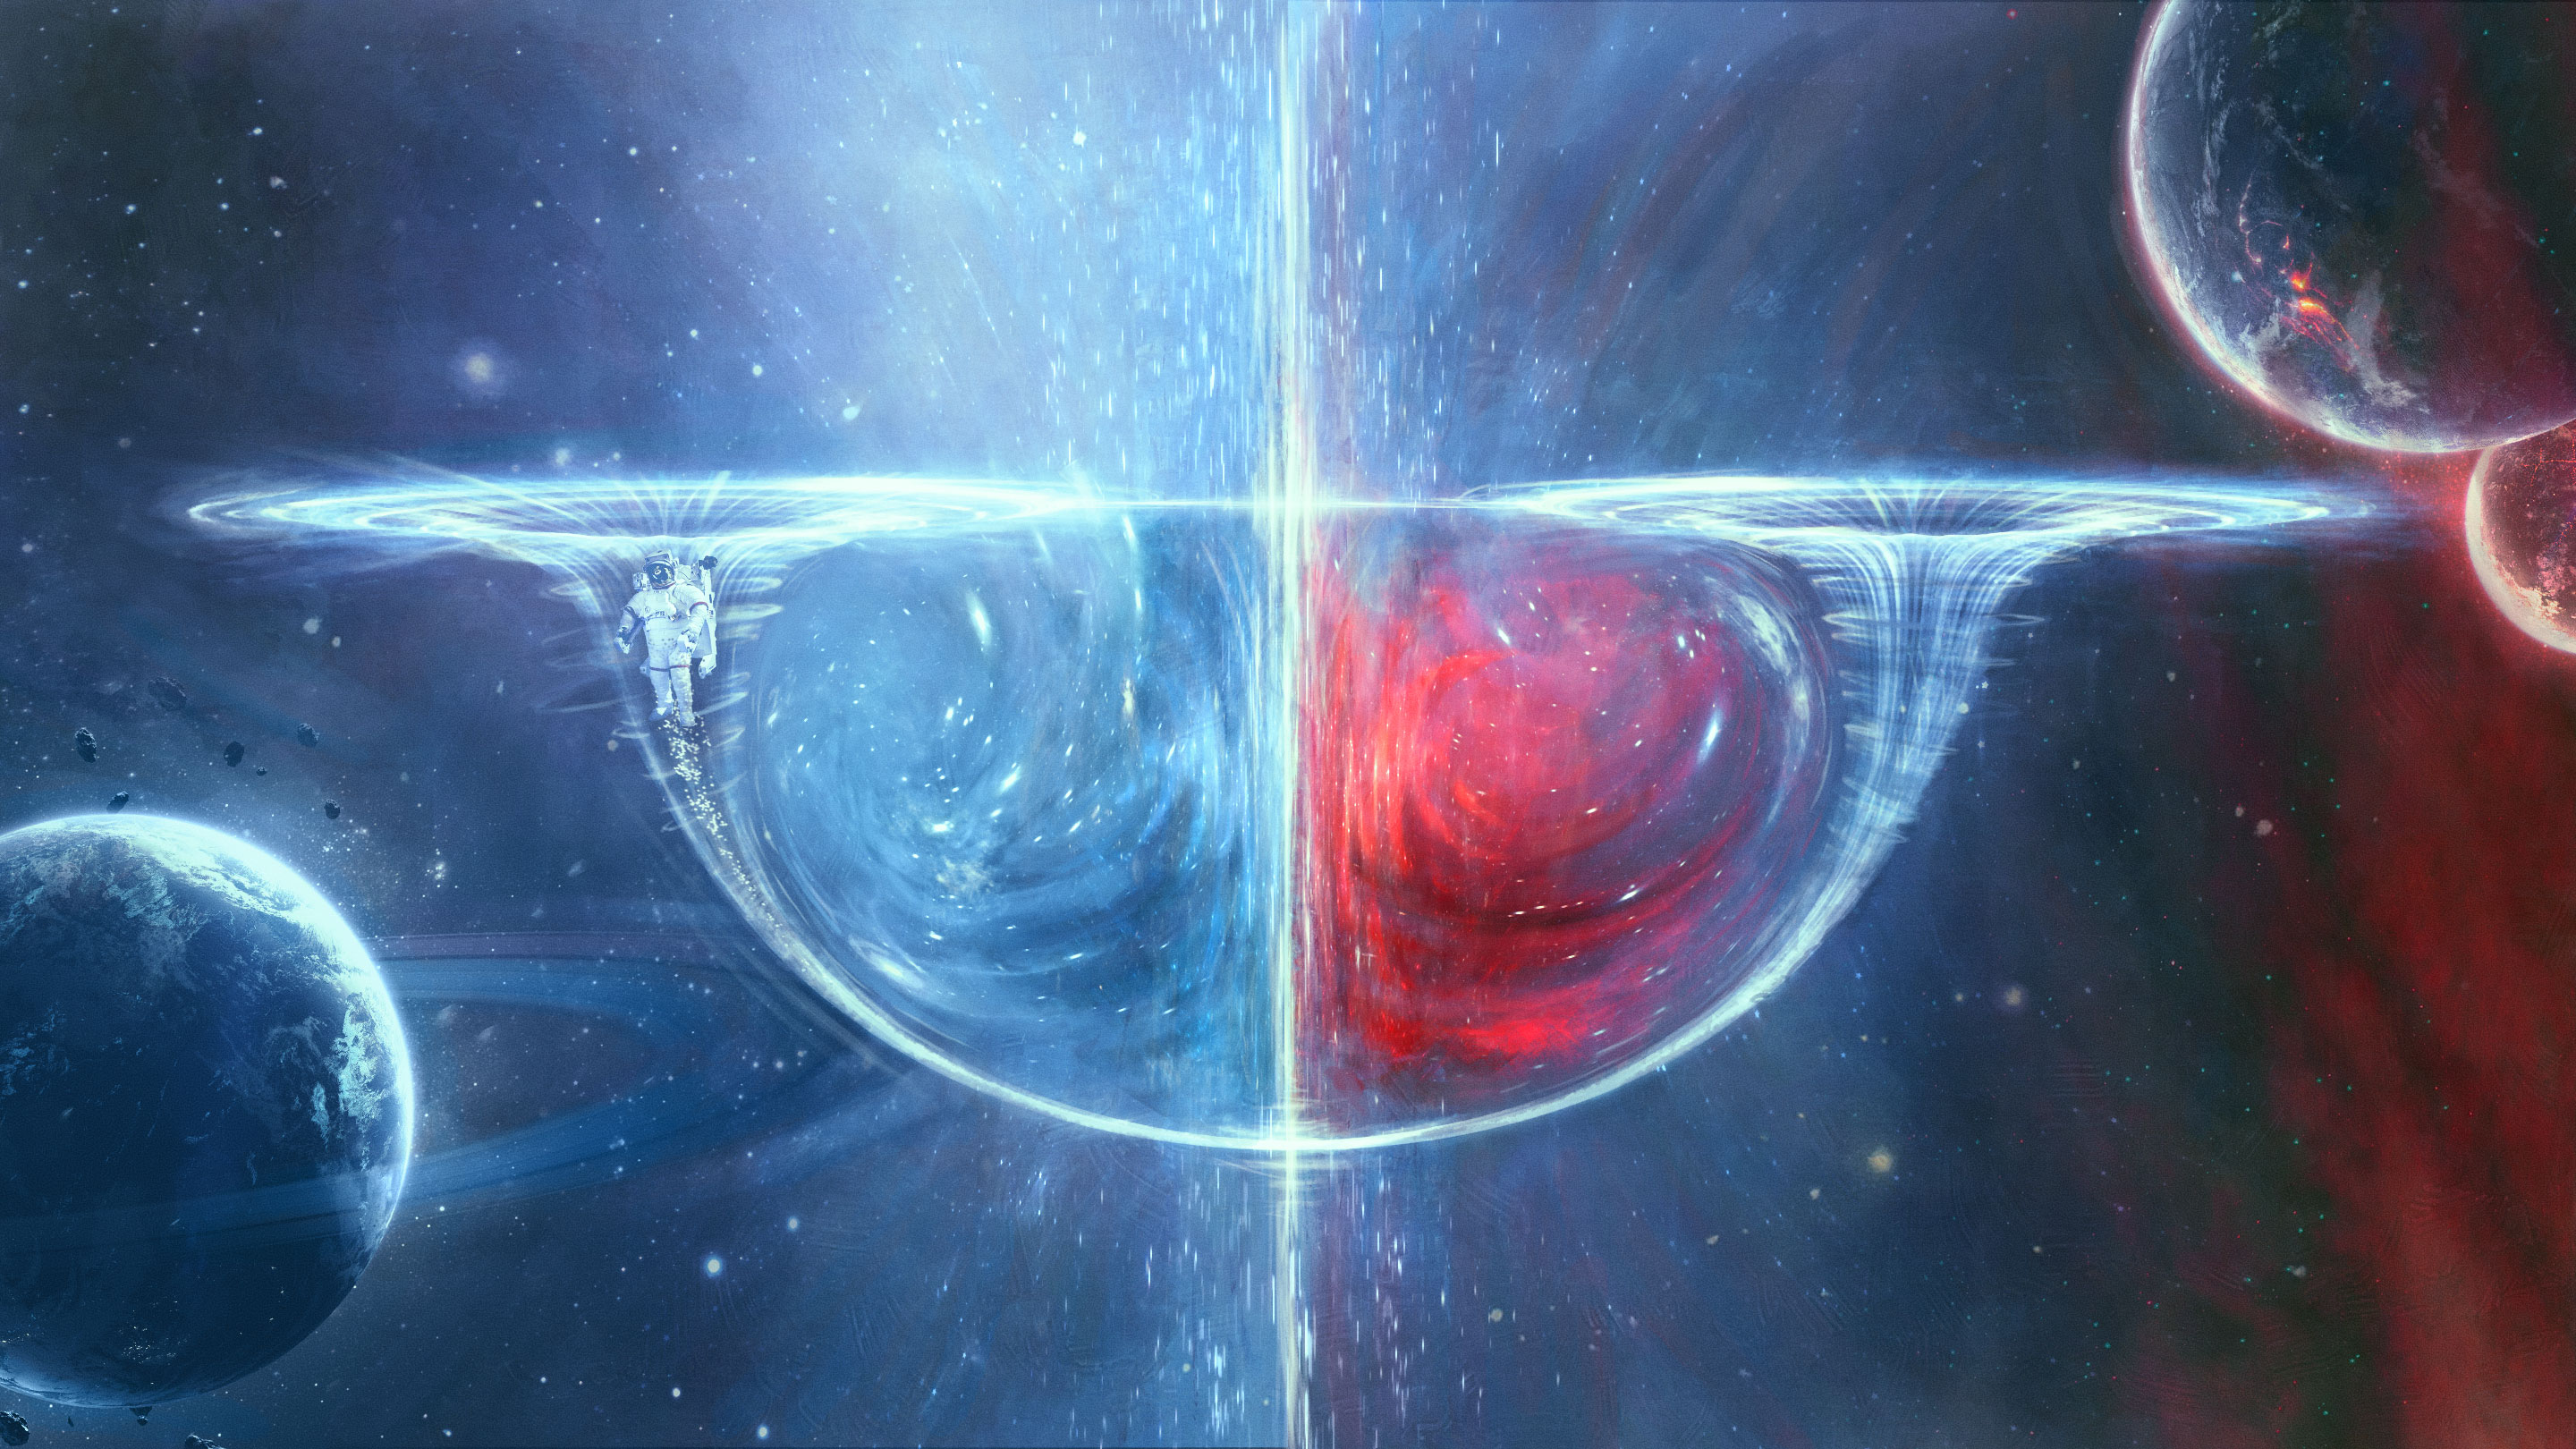 A wormhole split in two with swirls of blue on one side and swirls of pink on the other with a ringed planet in the background.